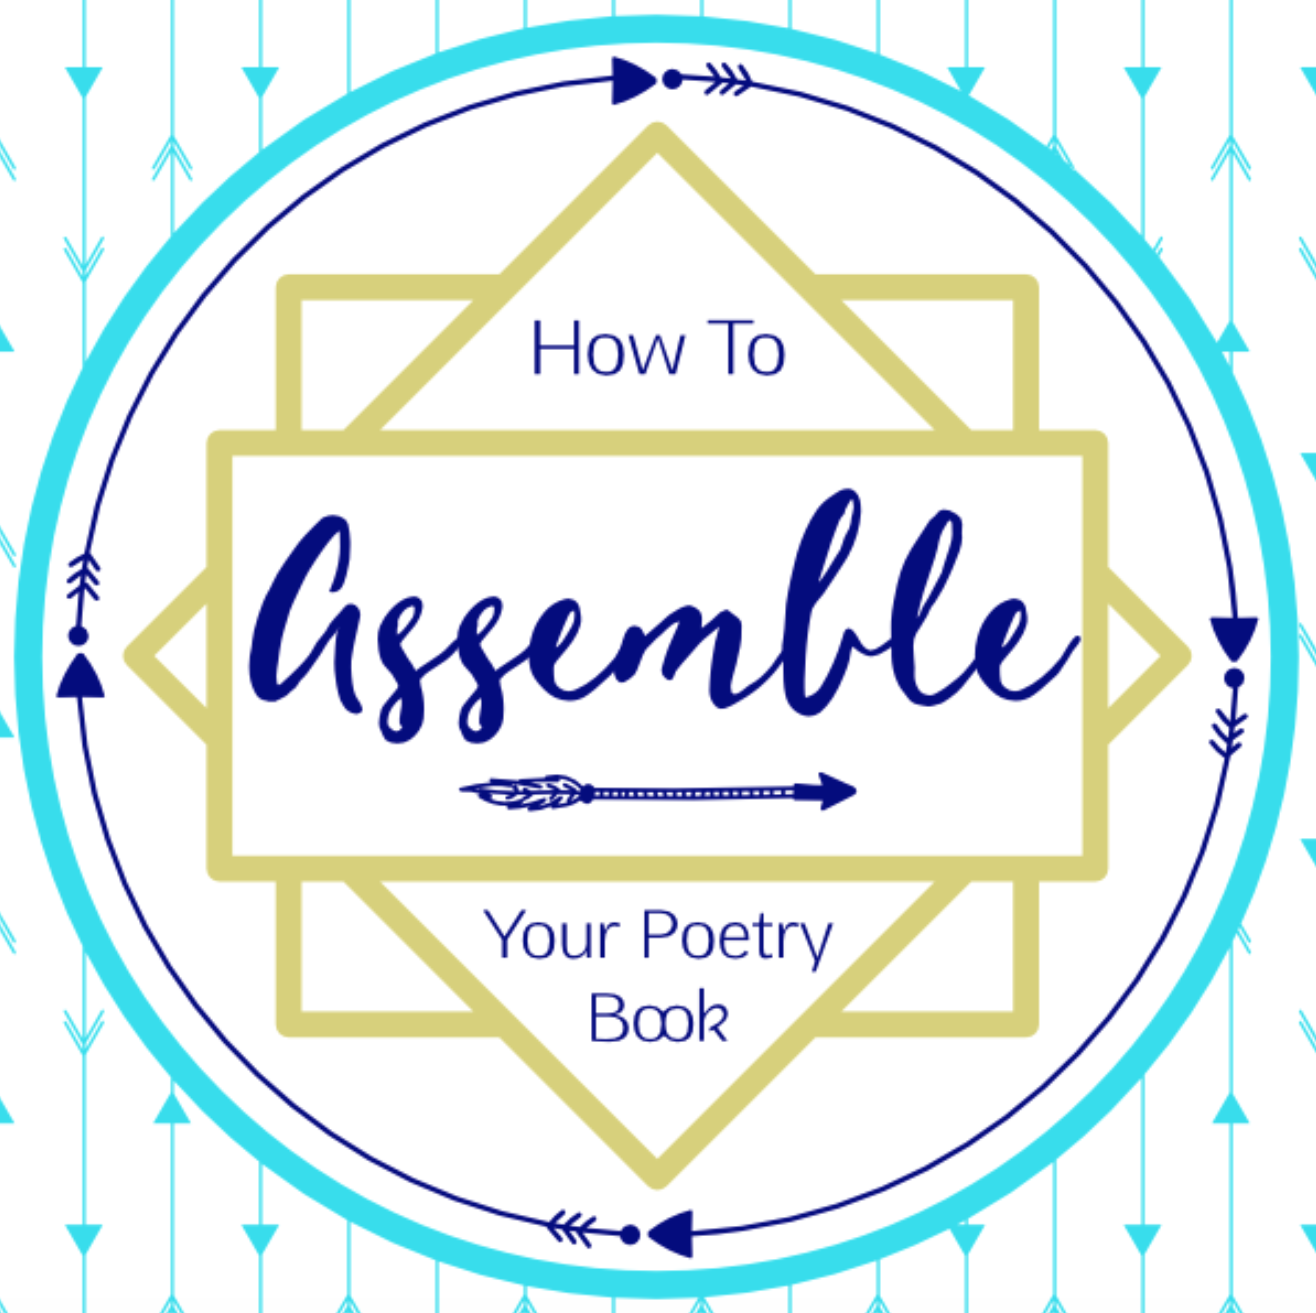 how to self-publish poetry